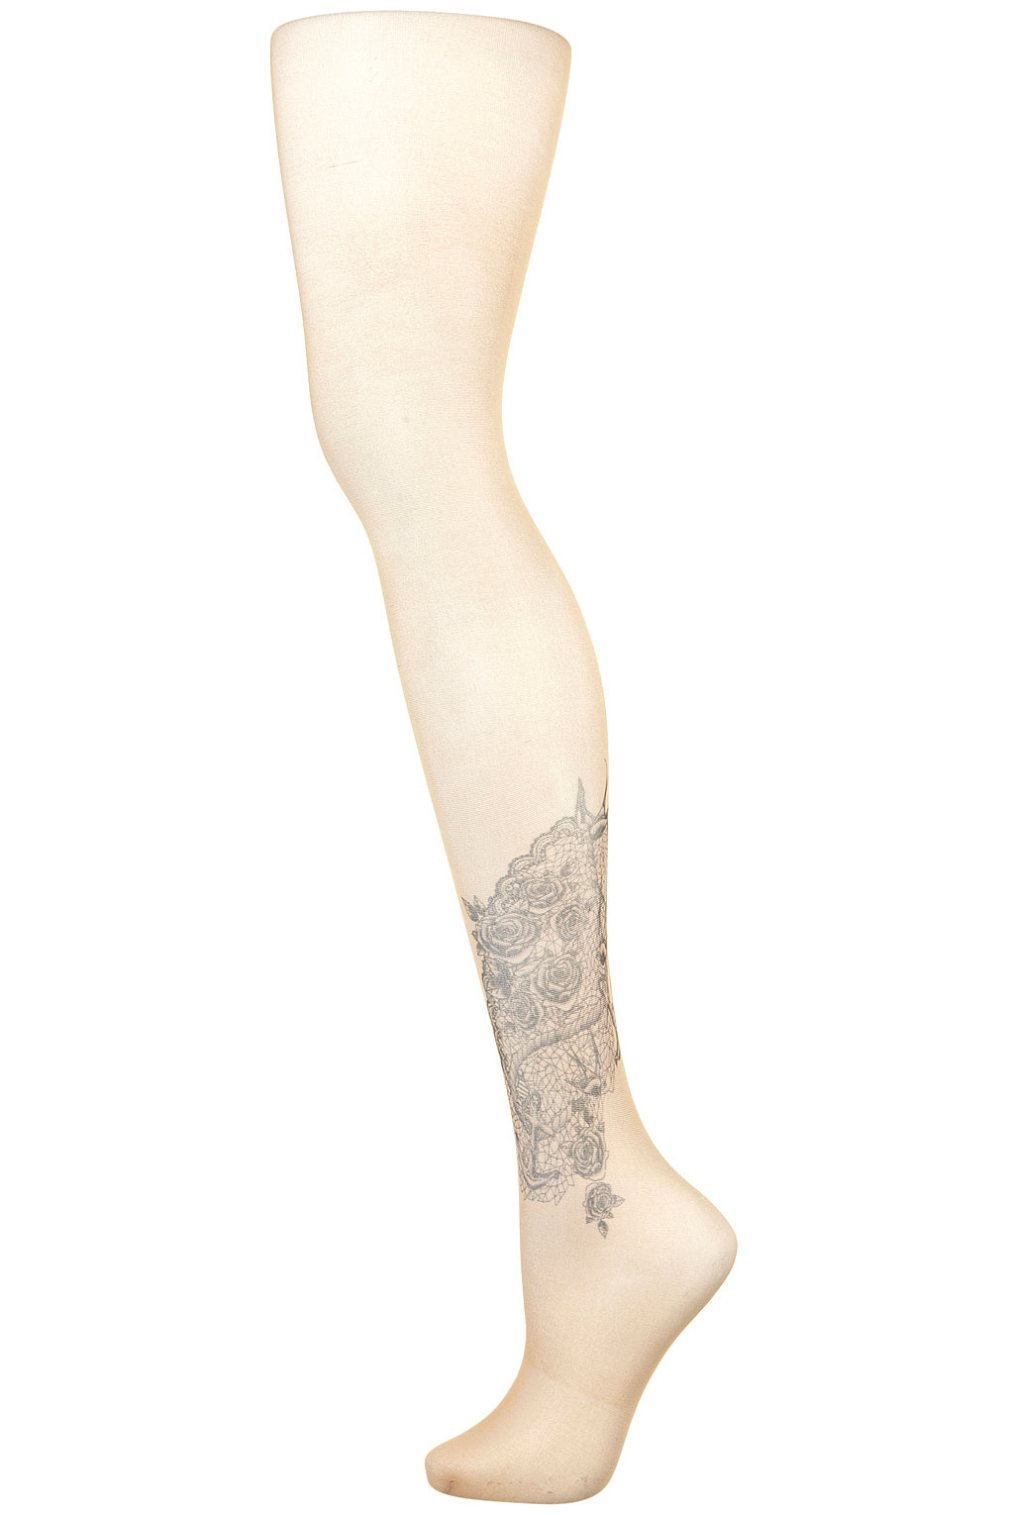 Tattoo Print Tights, £8.50, Topshop